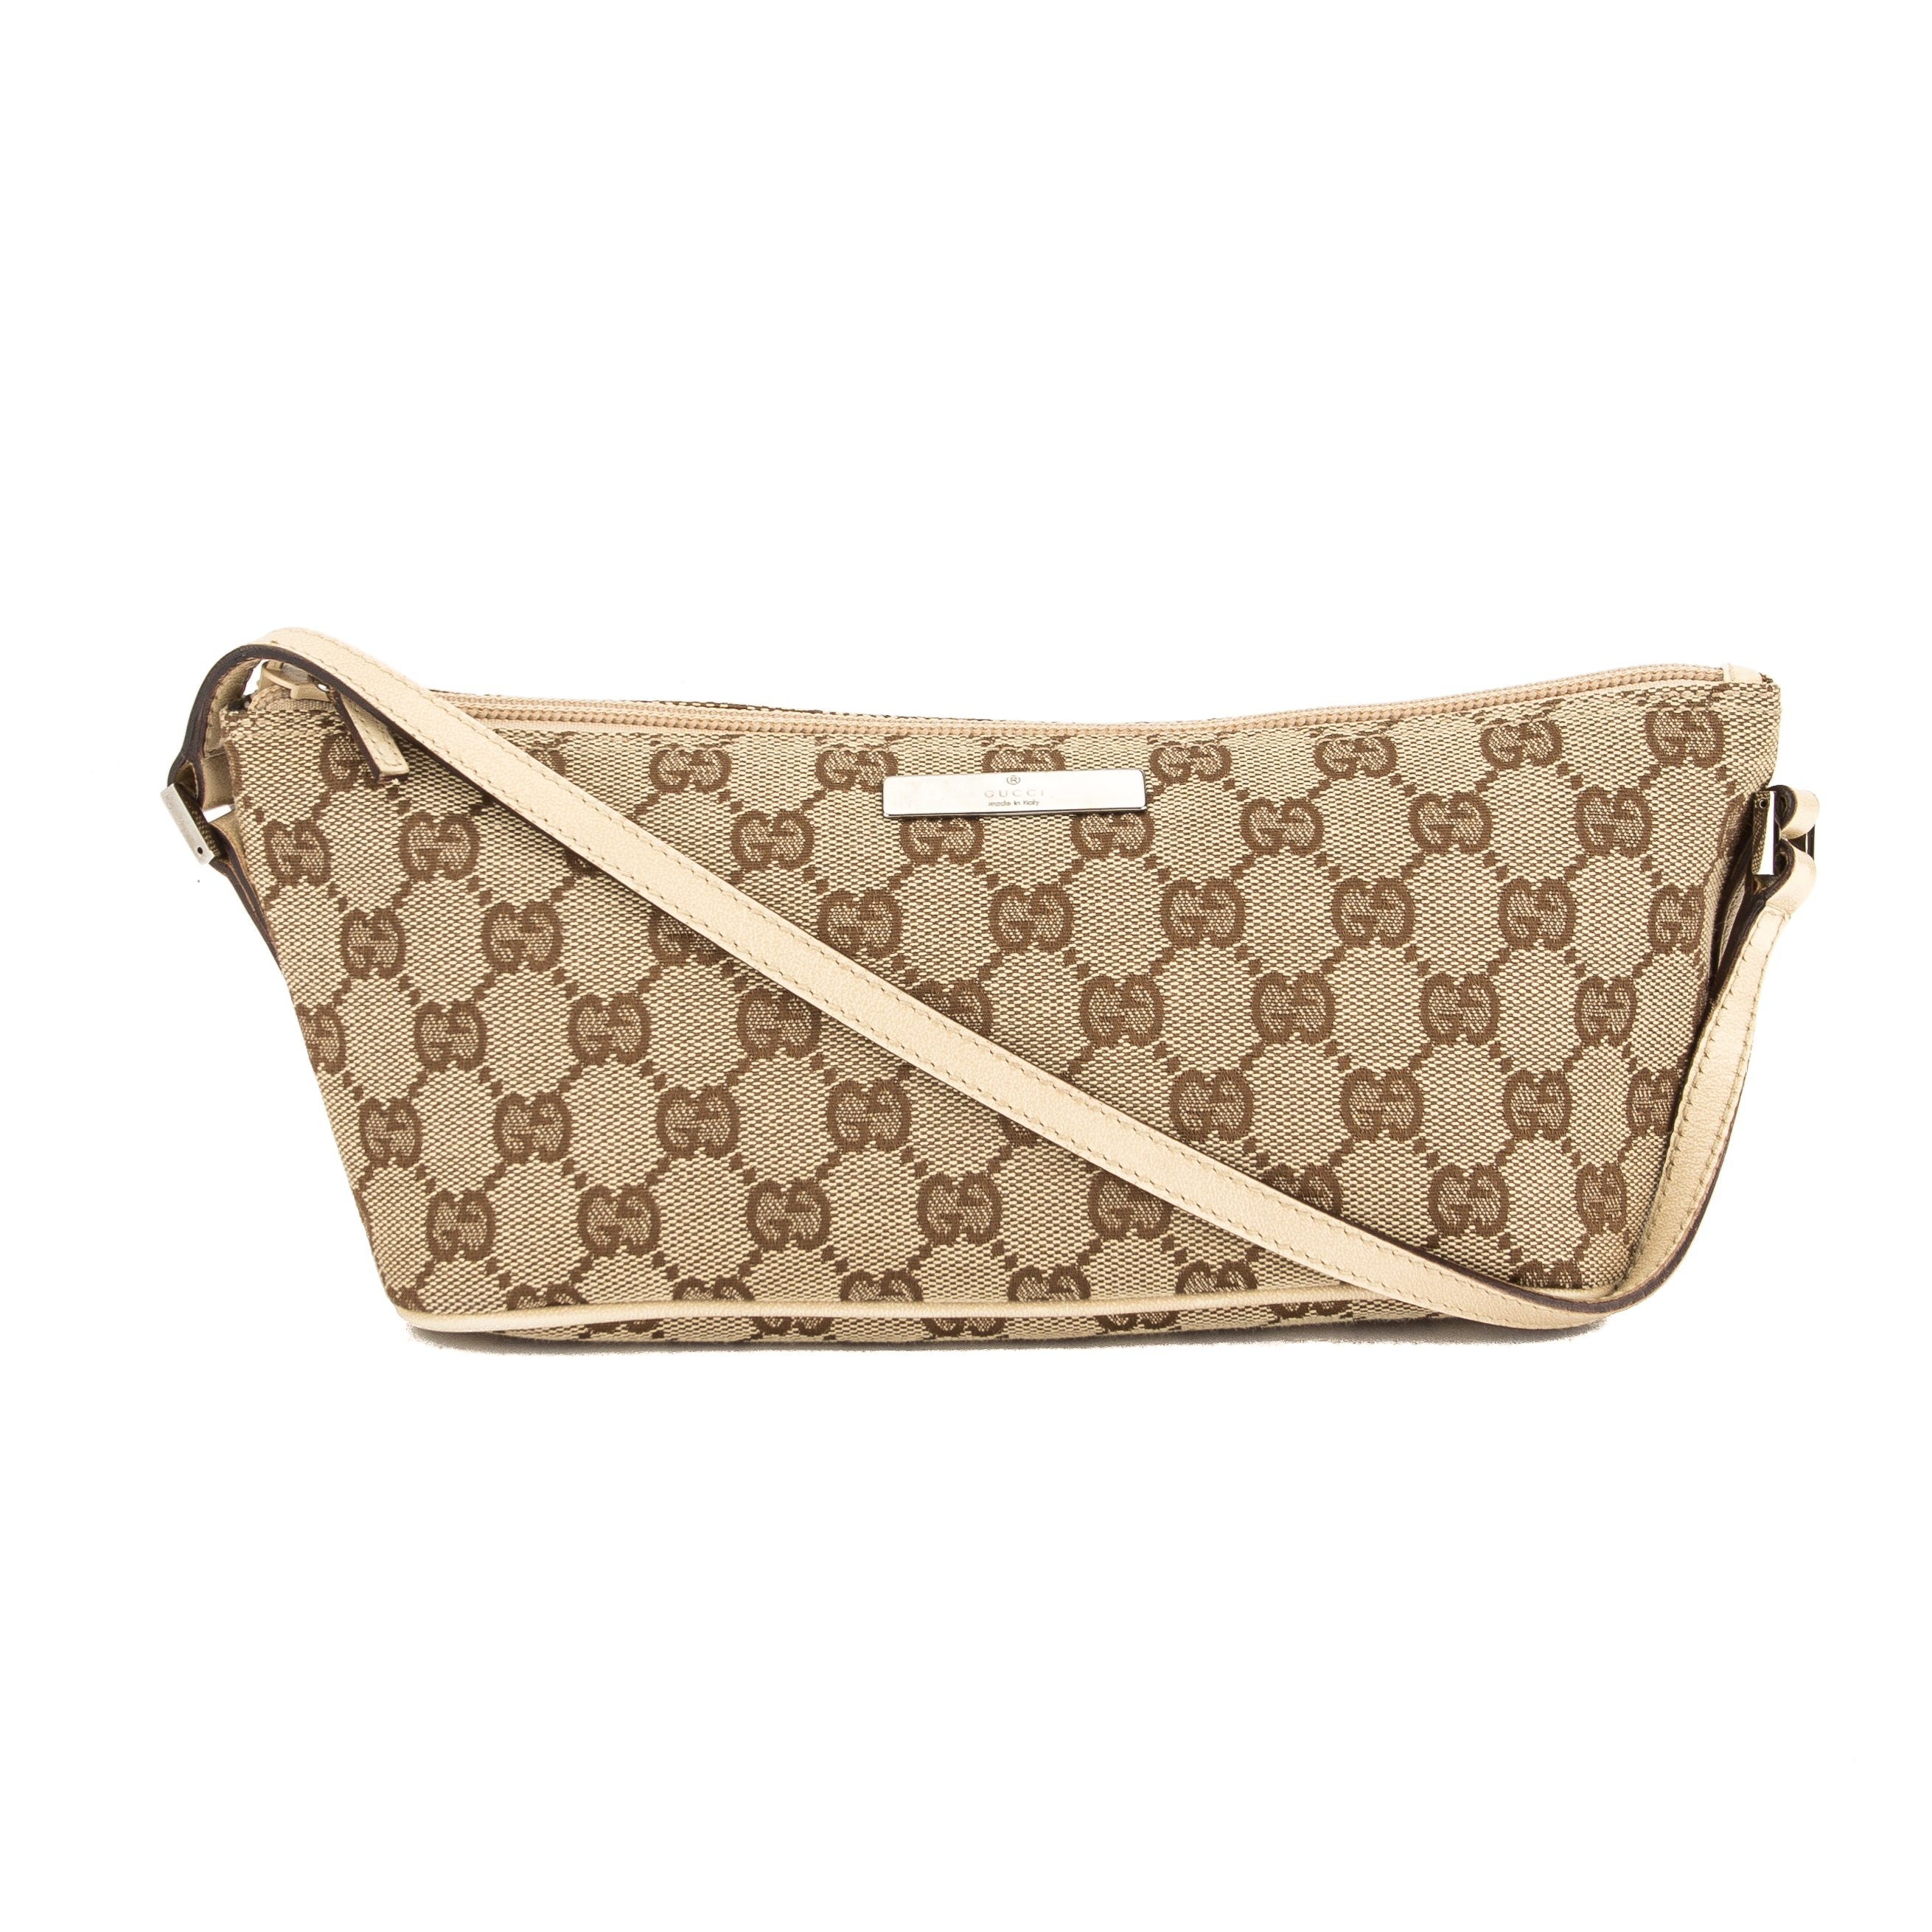 8afe2d742771 Gucci GG Monogram Canvas Pochette Bag (Pre Owned) - 3670007